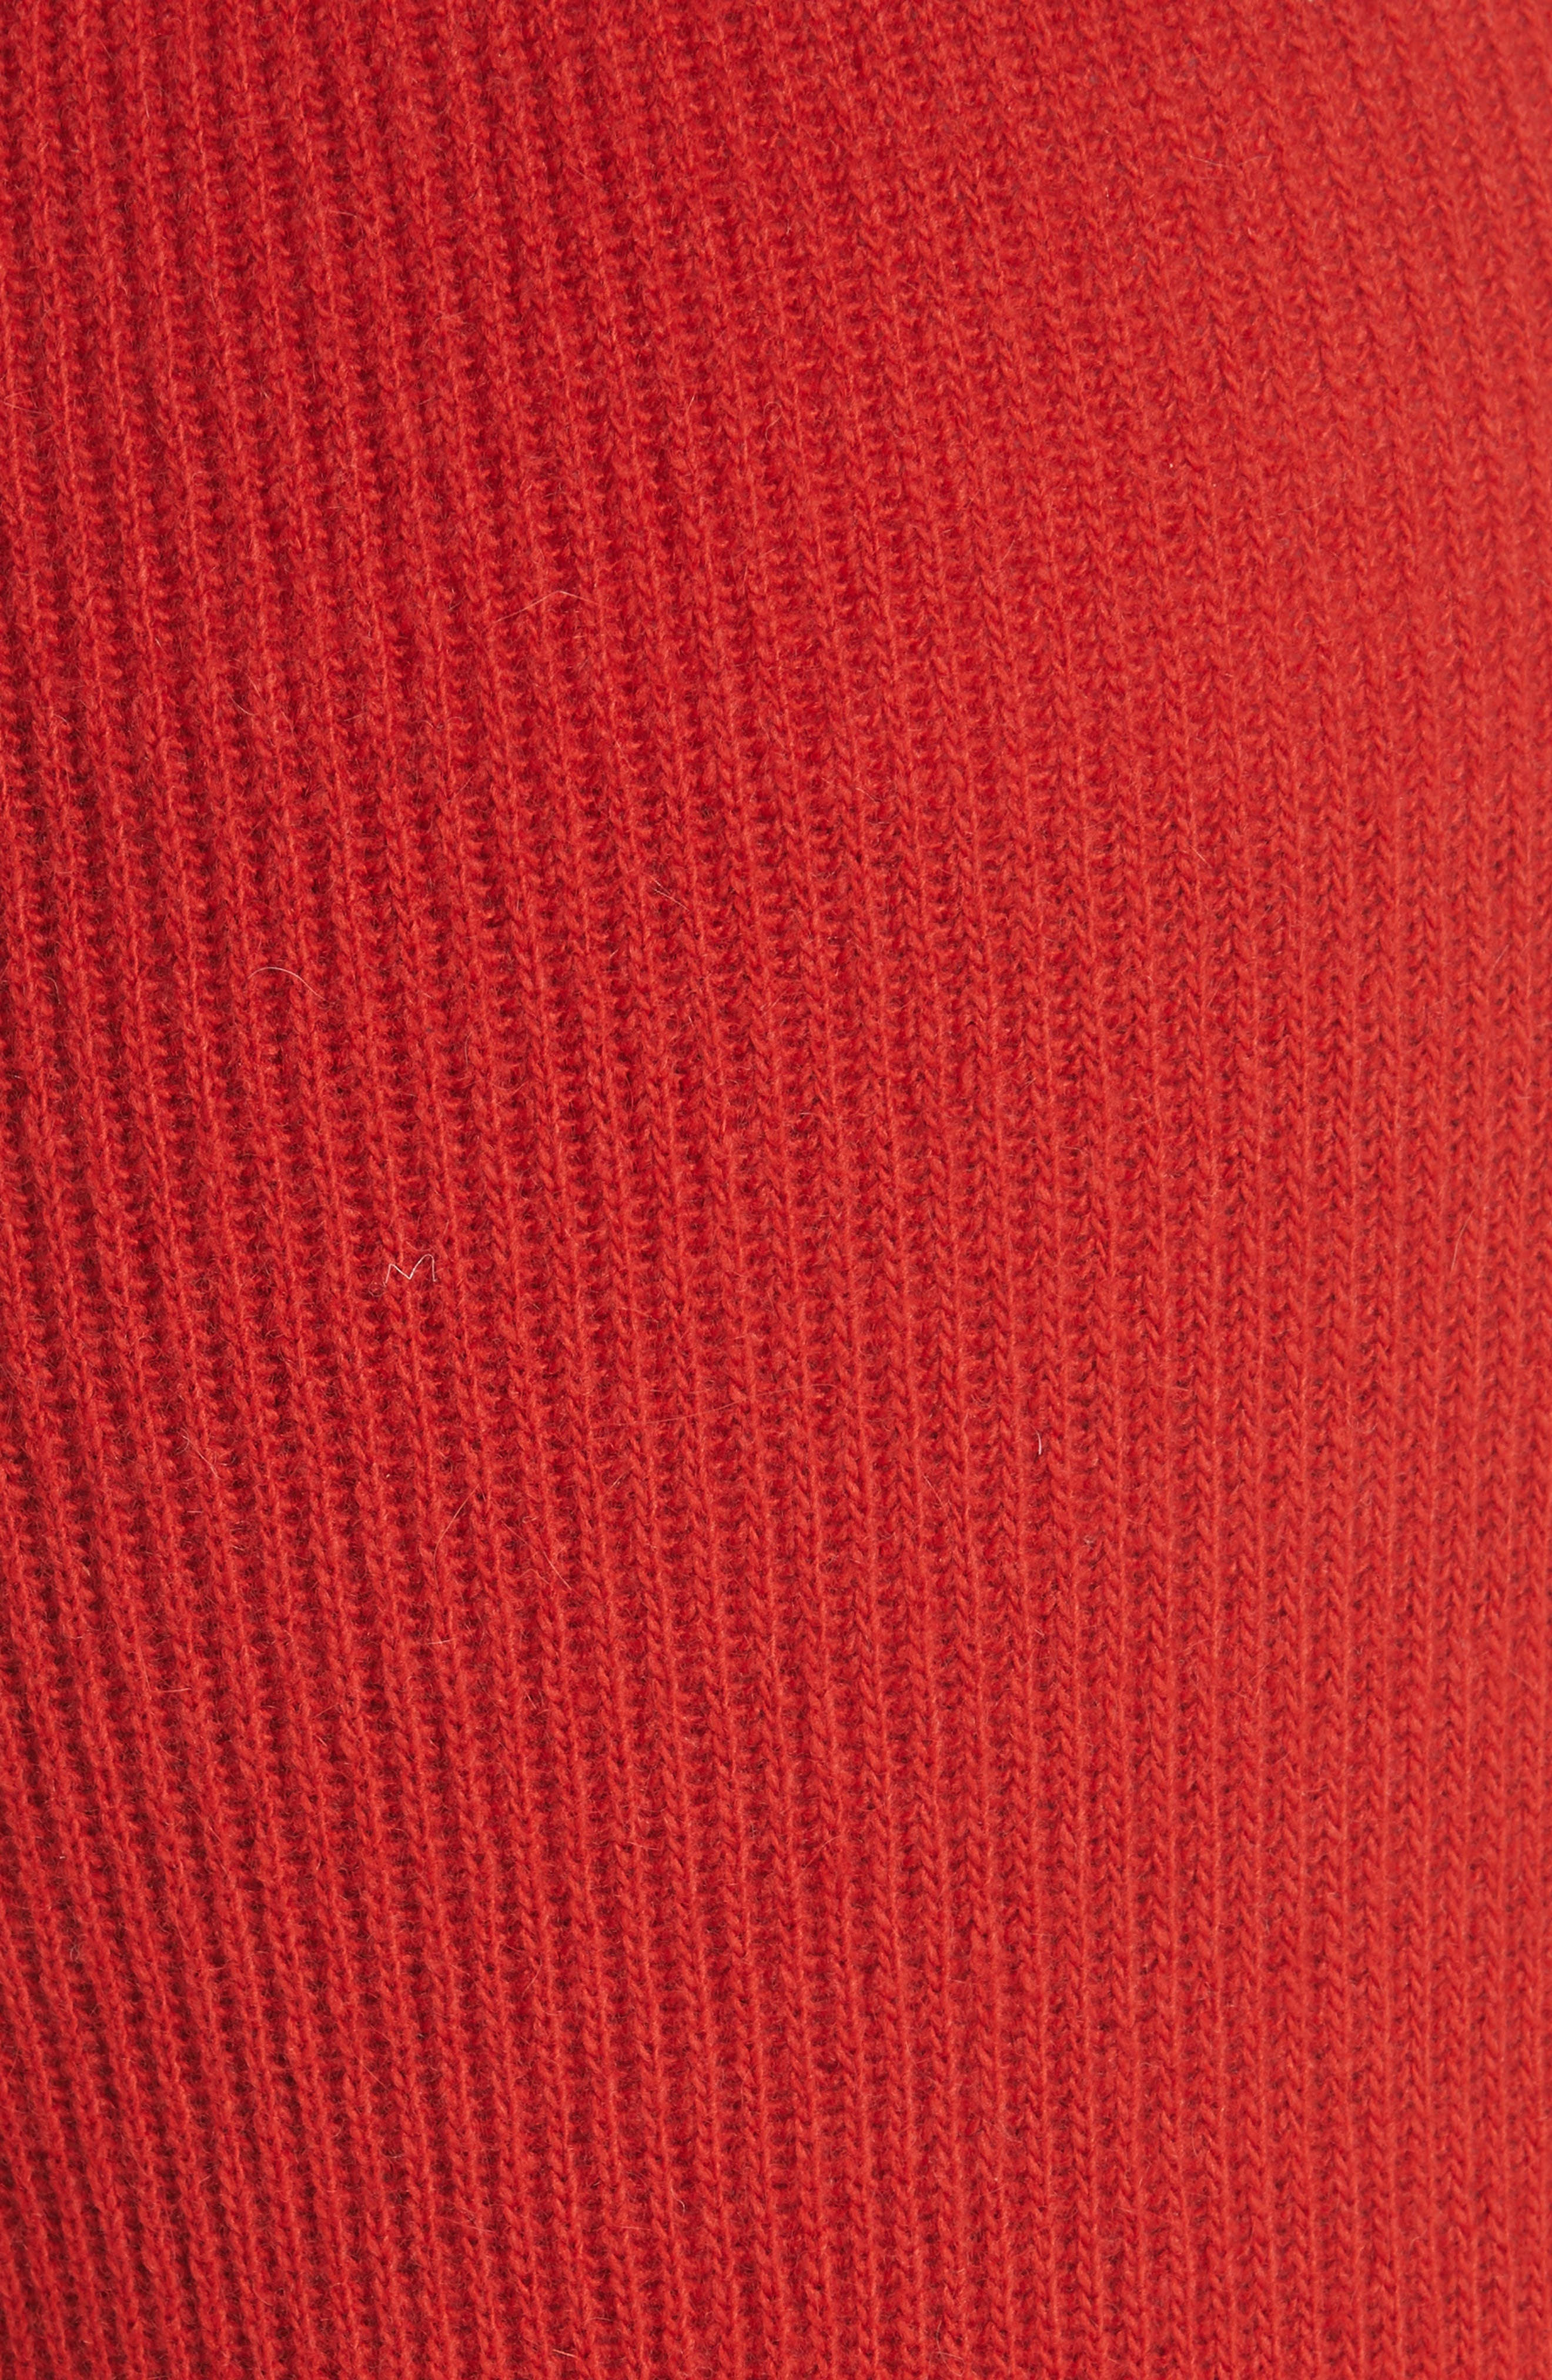 Tigre Merino Wool & Cashmere Blend Pants,                             Alternate thumbnail 5, color,                             RED